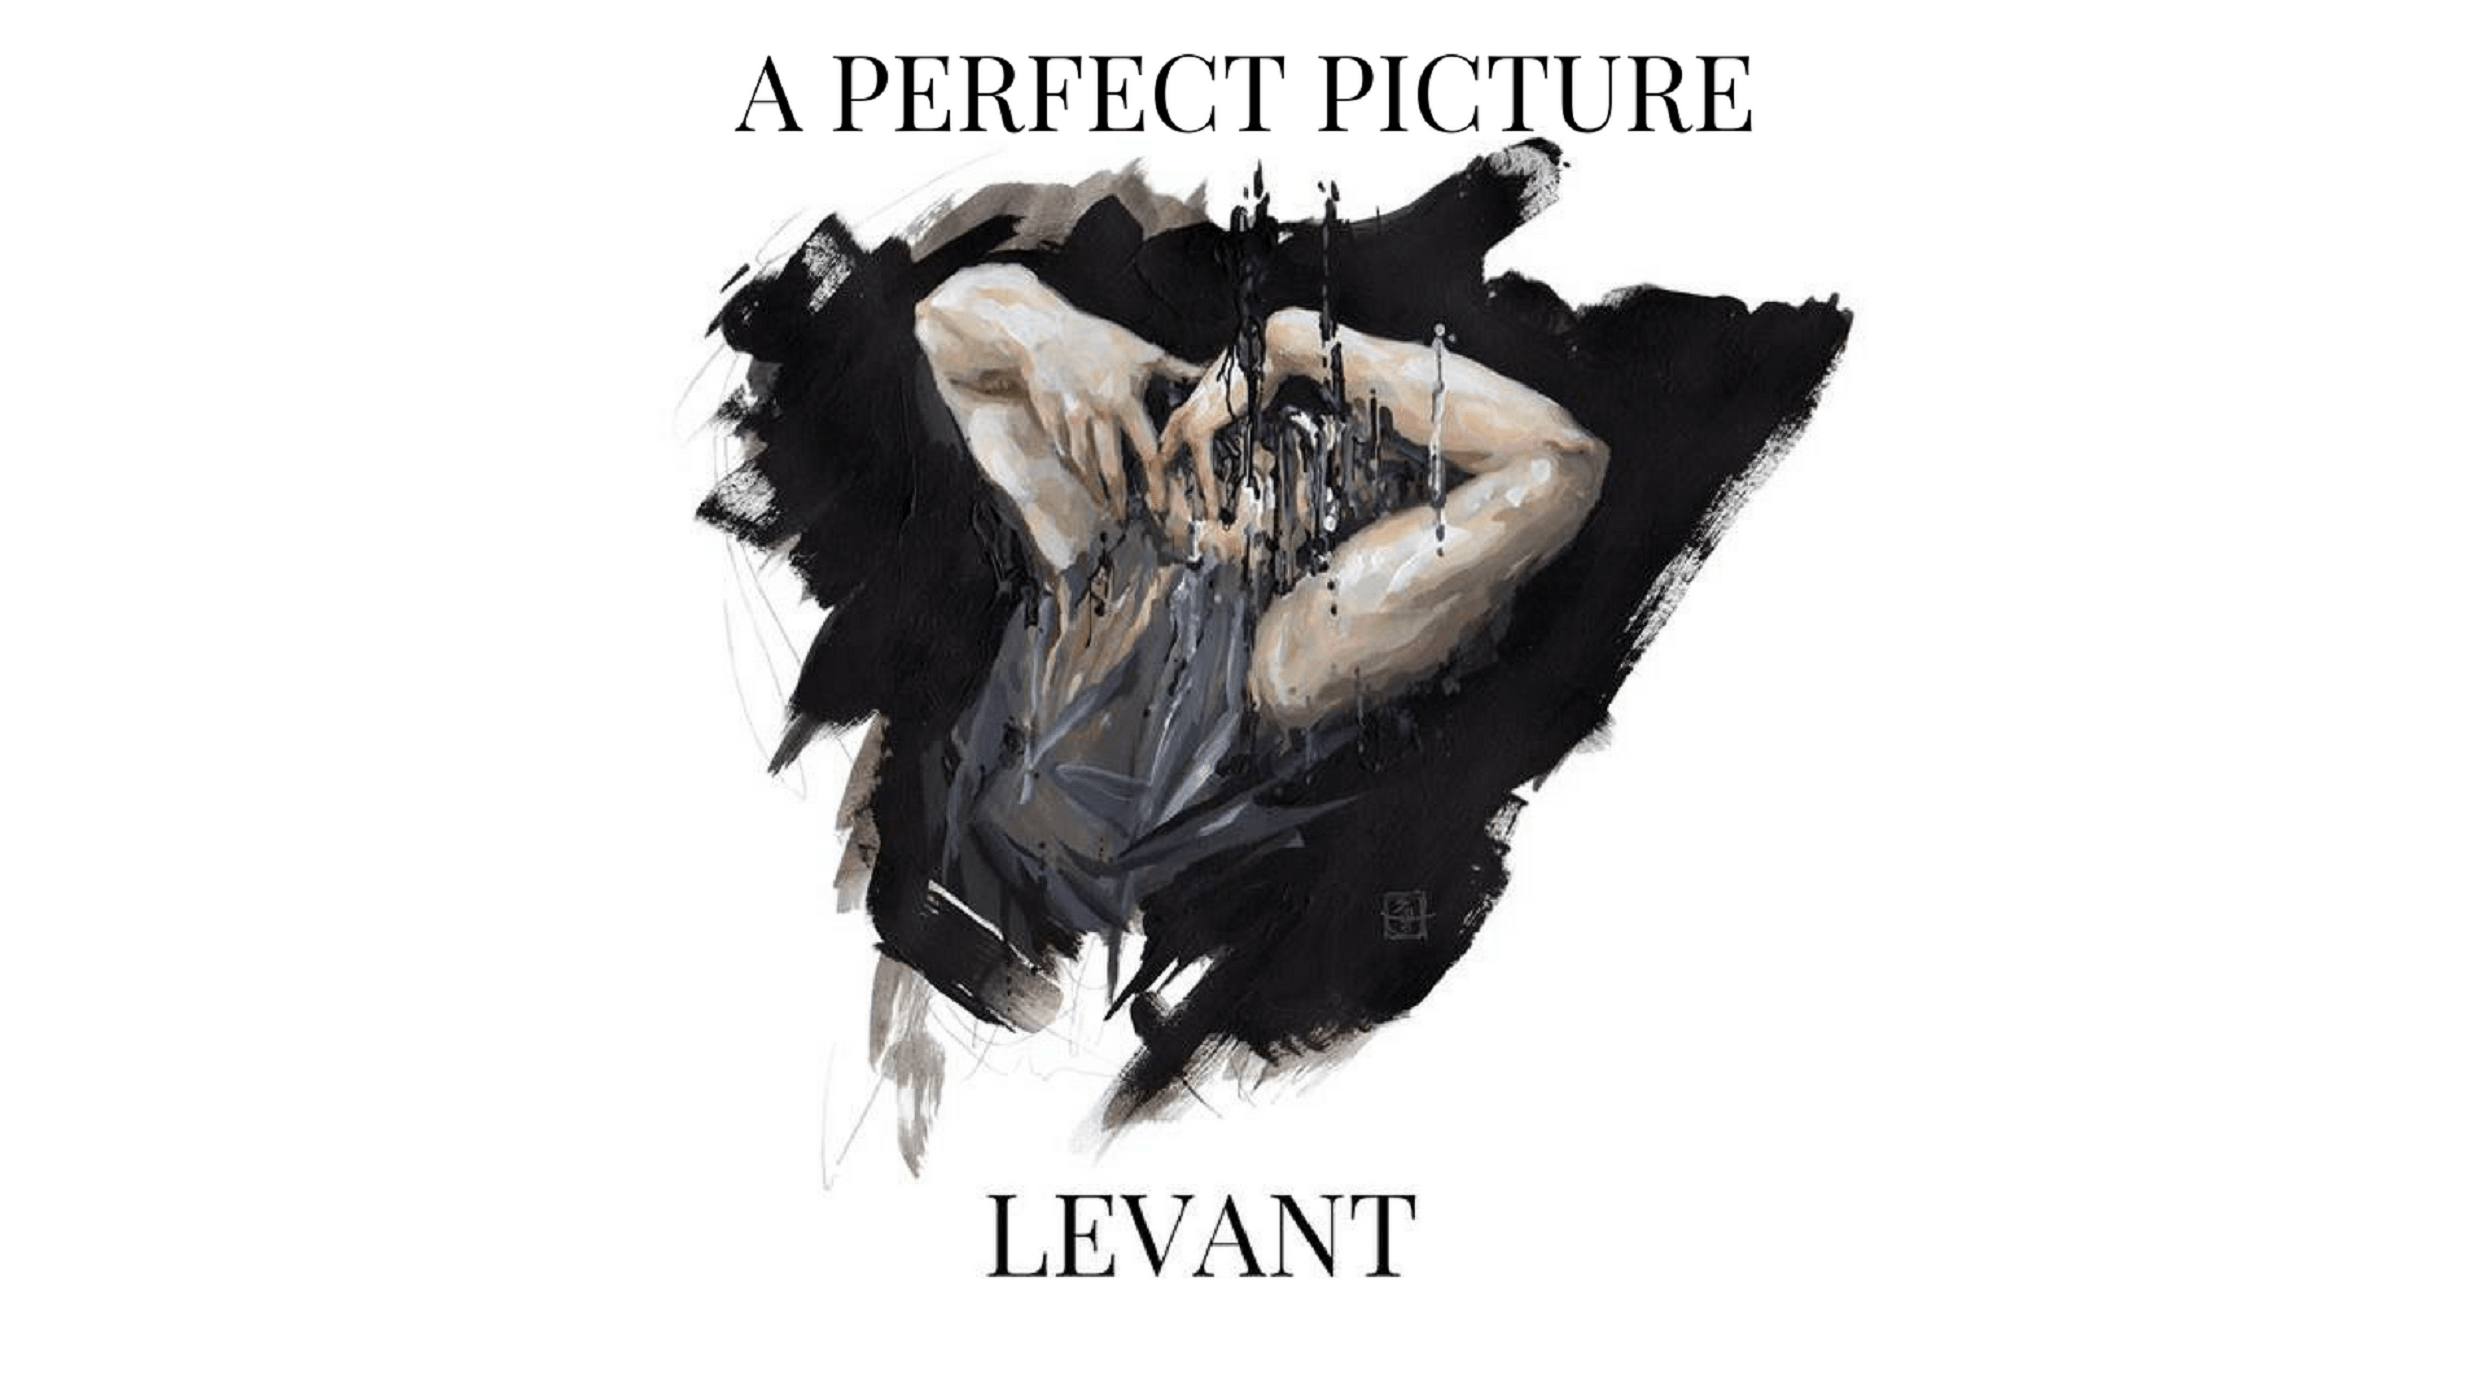 Click to listen to 'A PERFECT PICTURE'